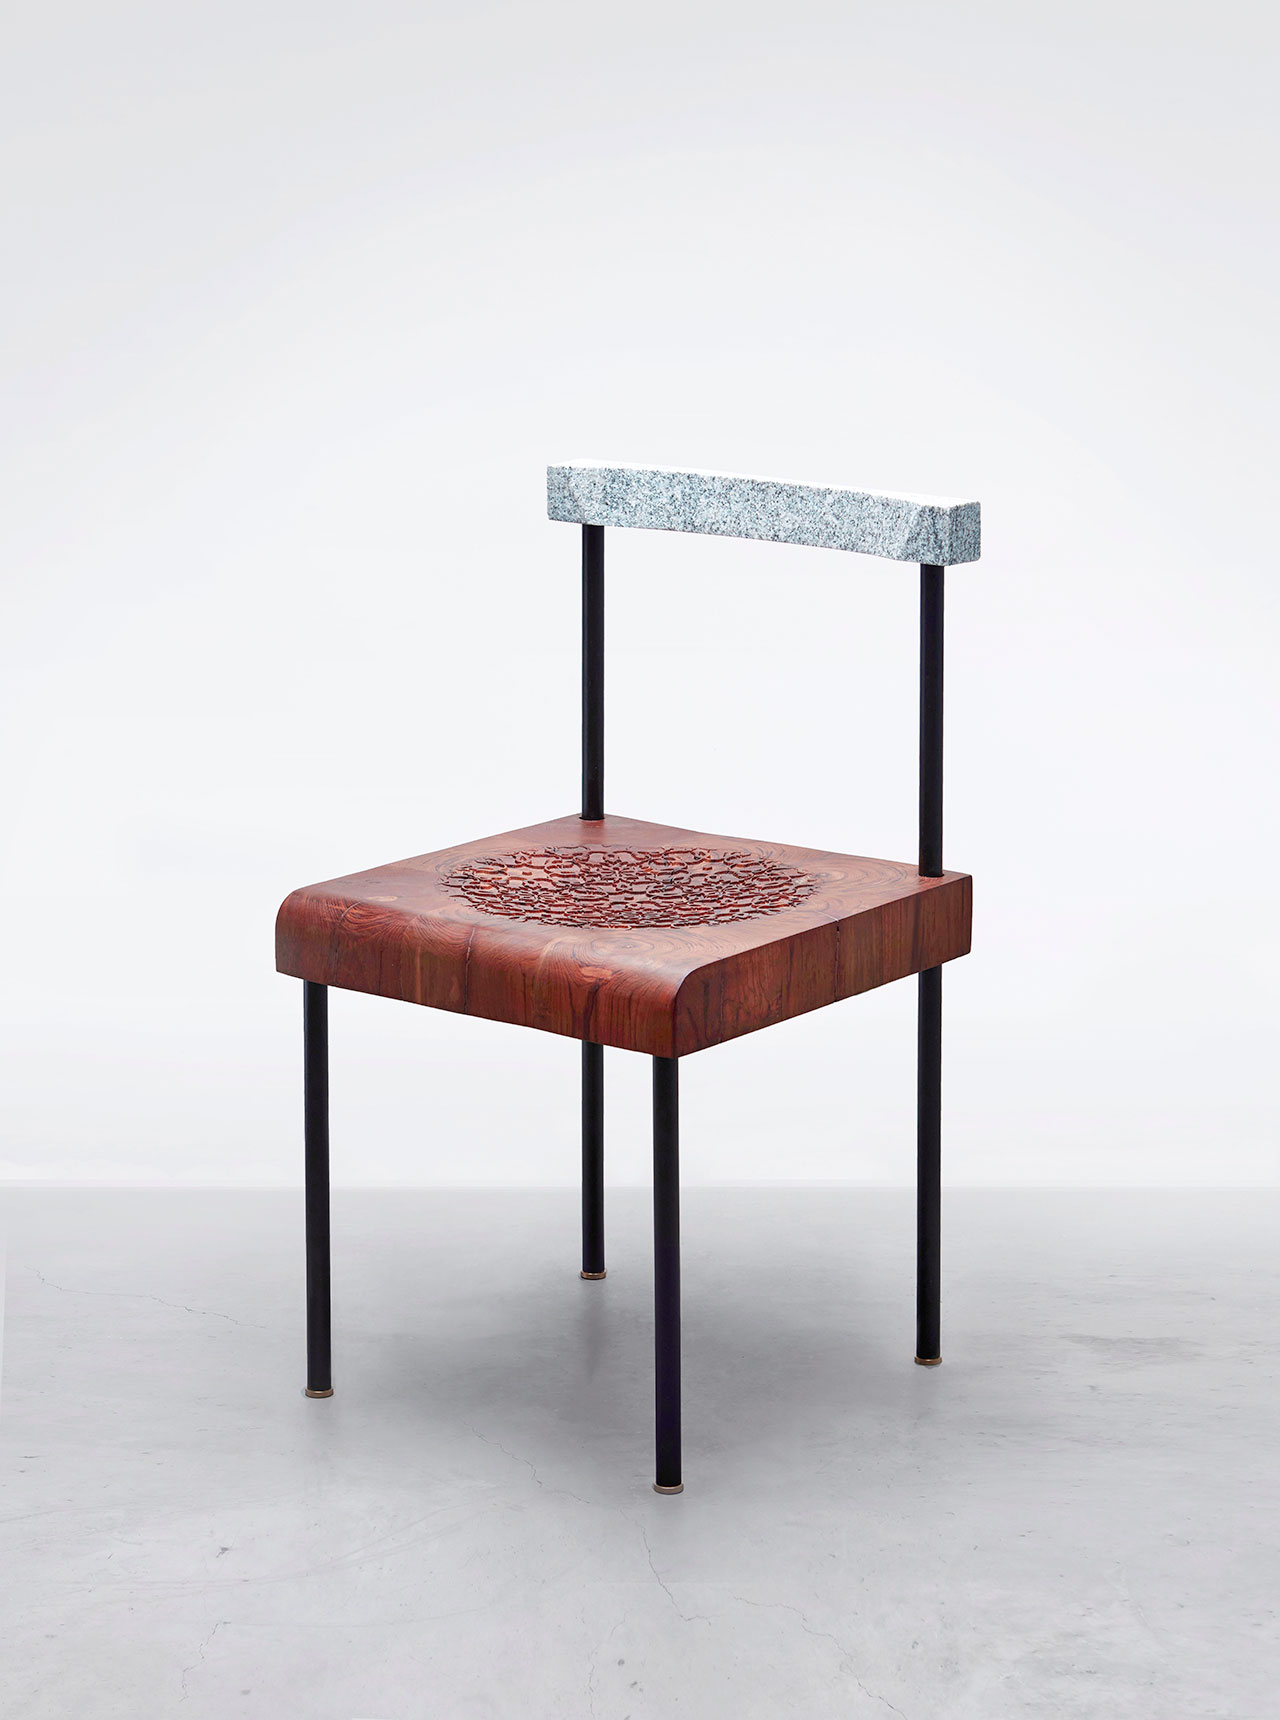 Sancha (Block) dining chair. Photo by Sameer Belvalkar.